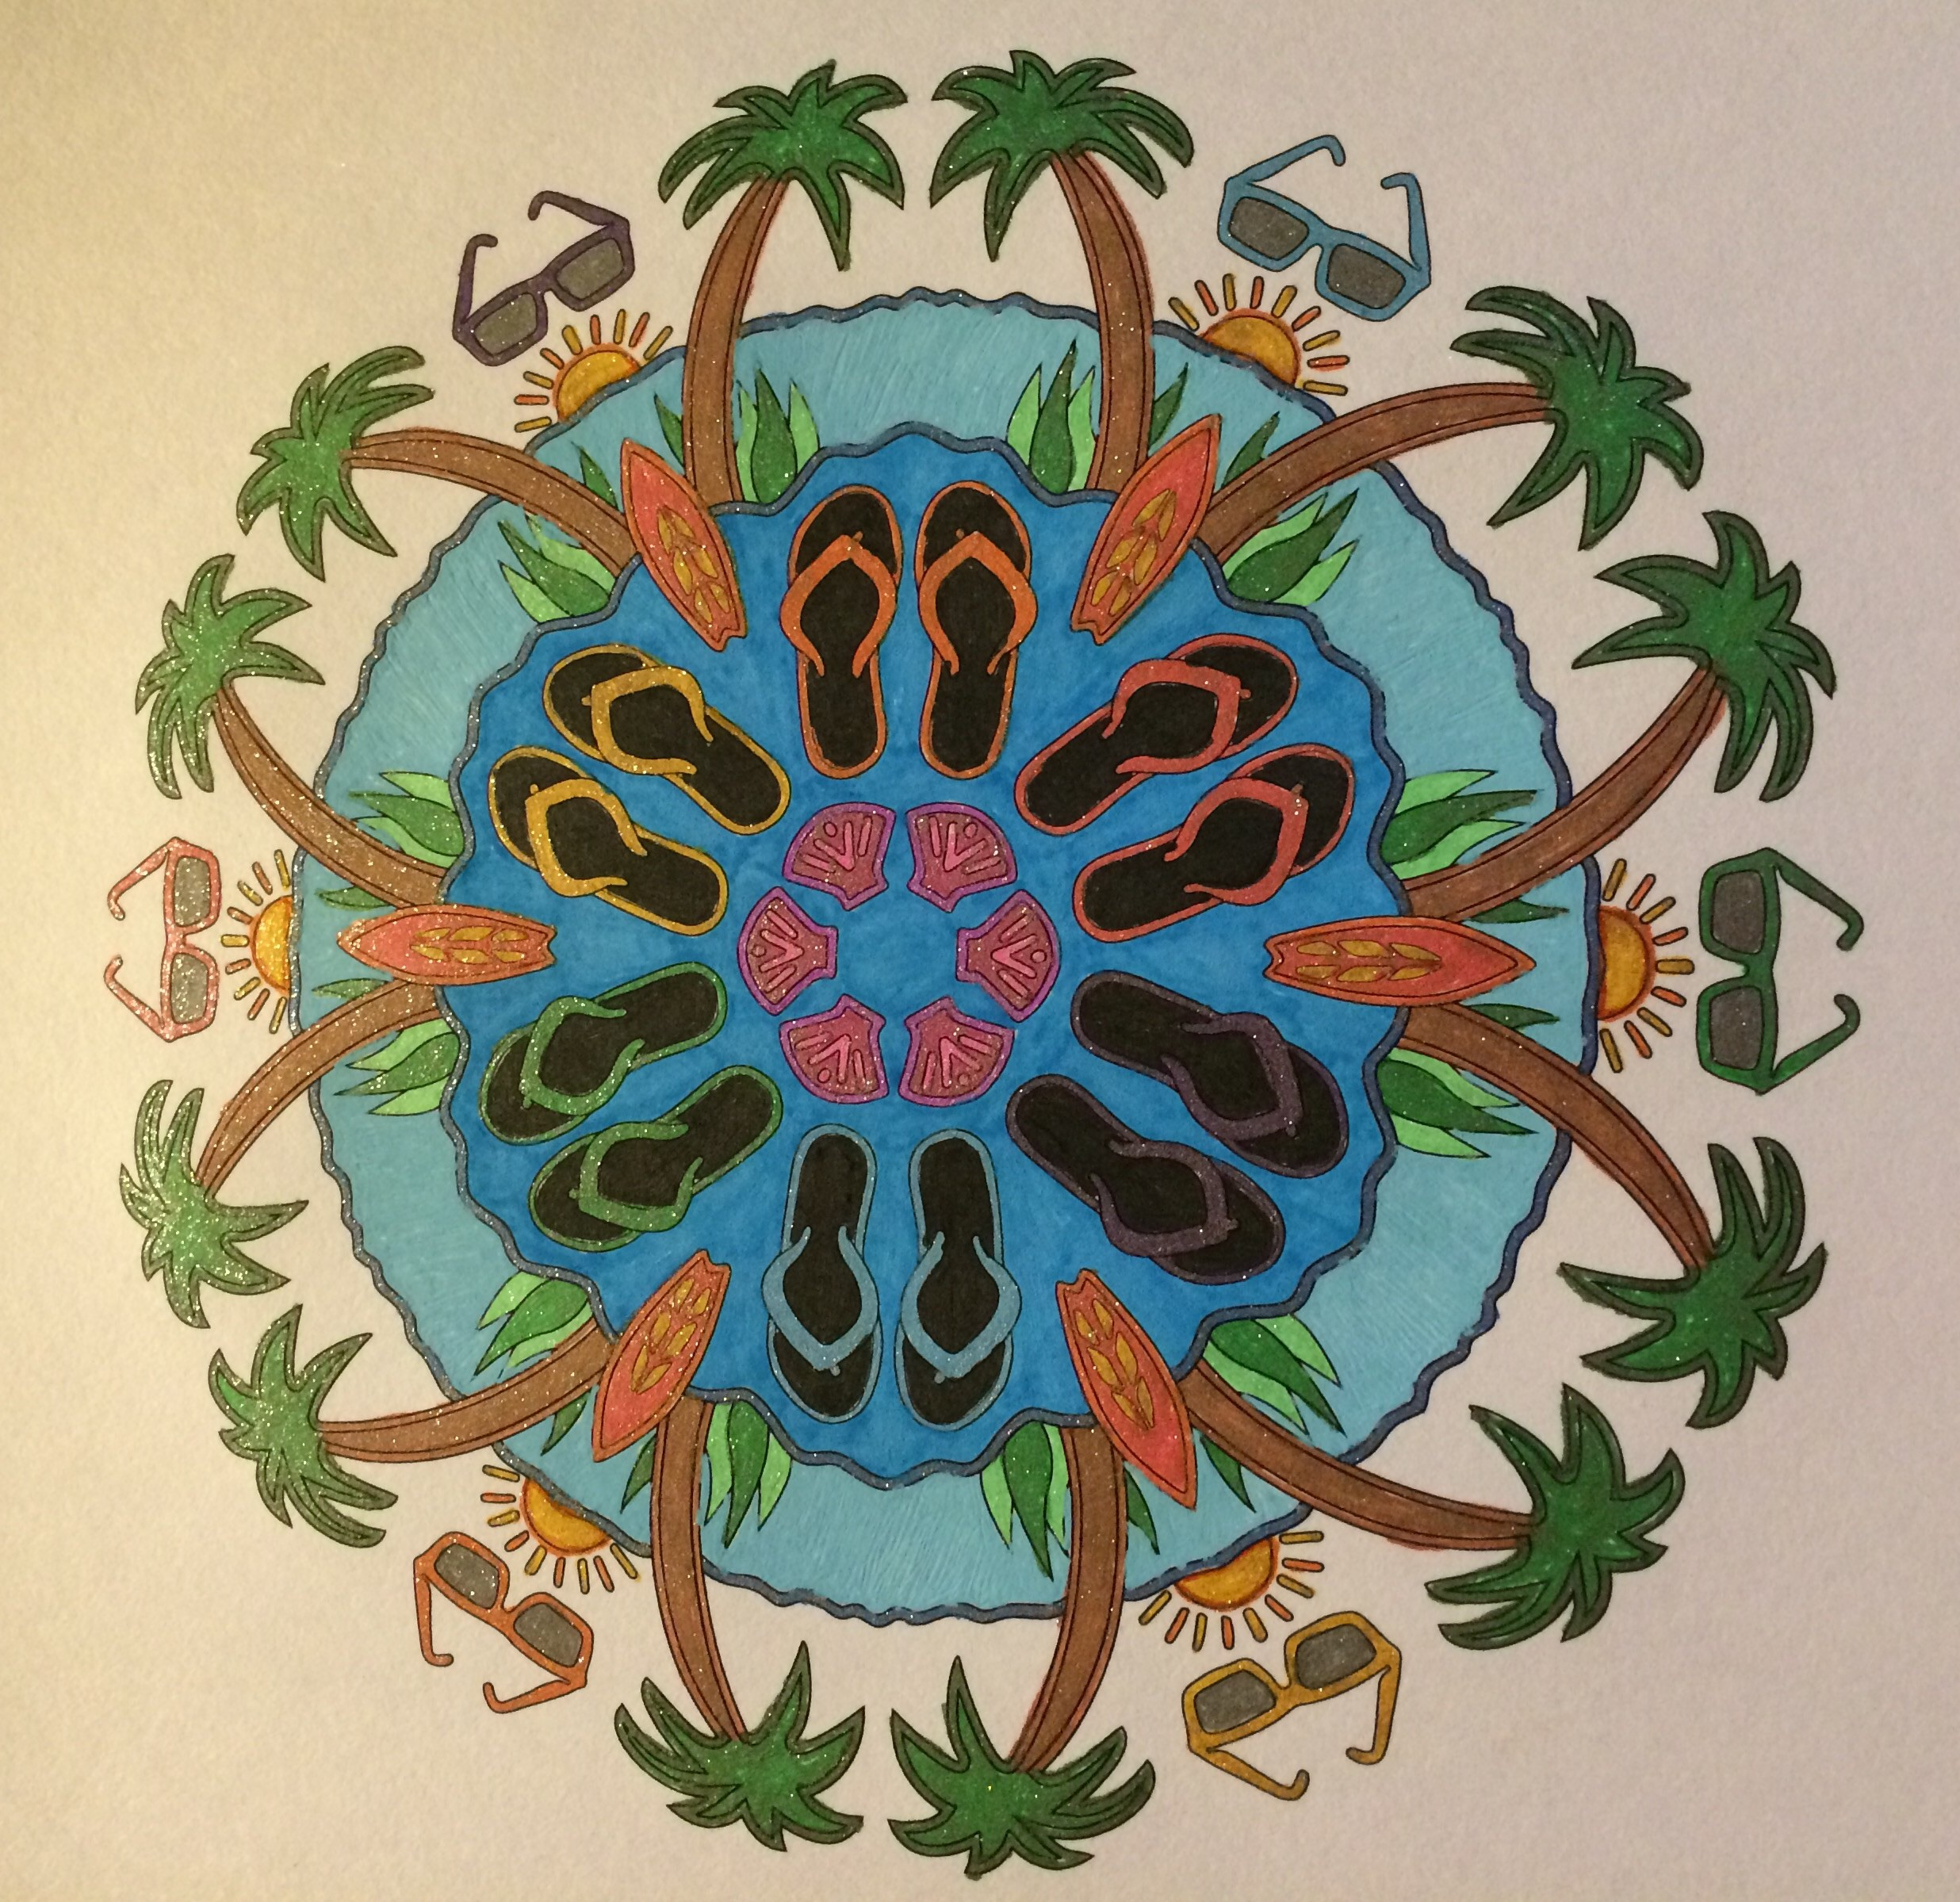 A Day at the Beach, OrnaMENTALs #0020, Colored by Lisa Frey.